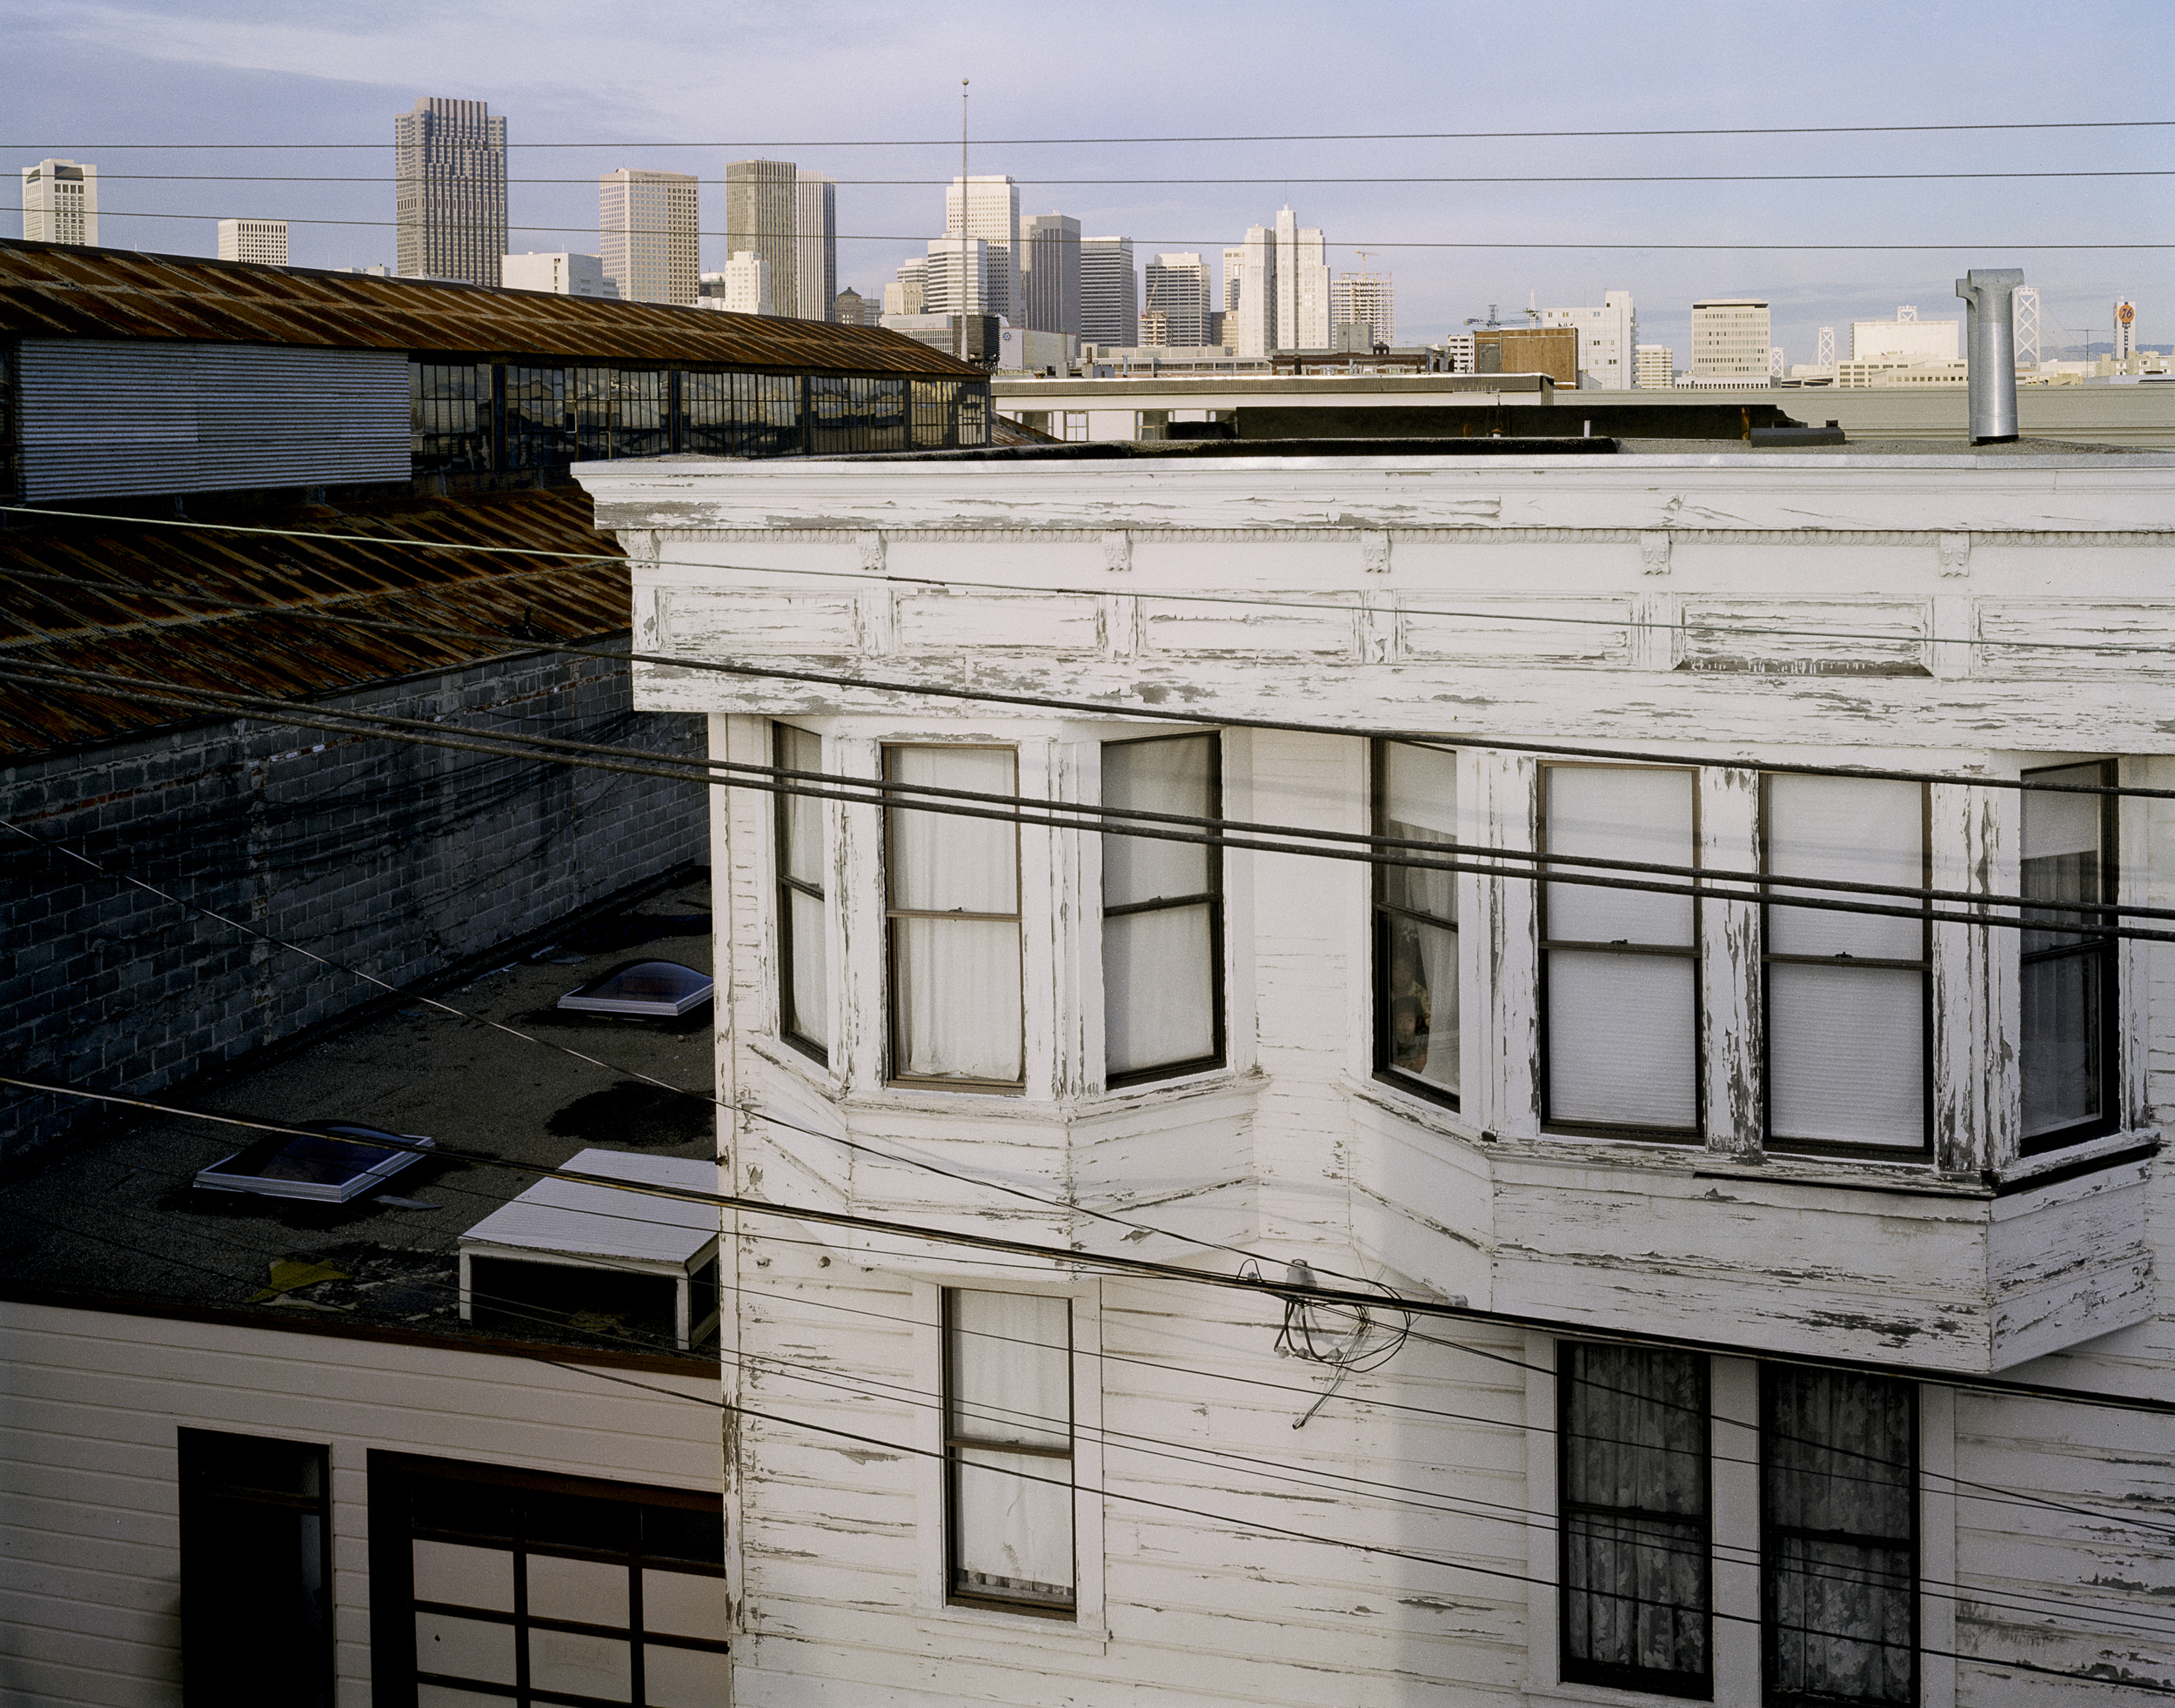 JANET DELANEY View of downtown from roof of 80 Langton Street, 1982 Archival Pigment Print, 2016 16 x 20 inches, edition of 5 20 x 24 inches, edition of 2 30 x 40 inches, edition of 2